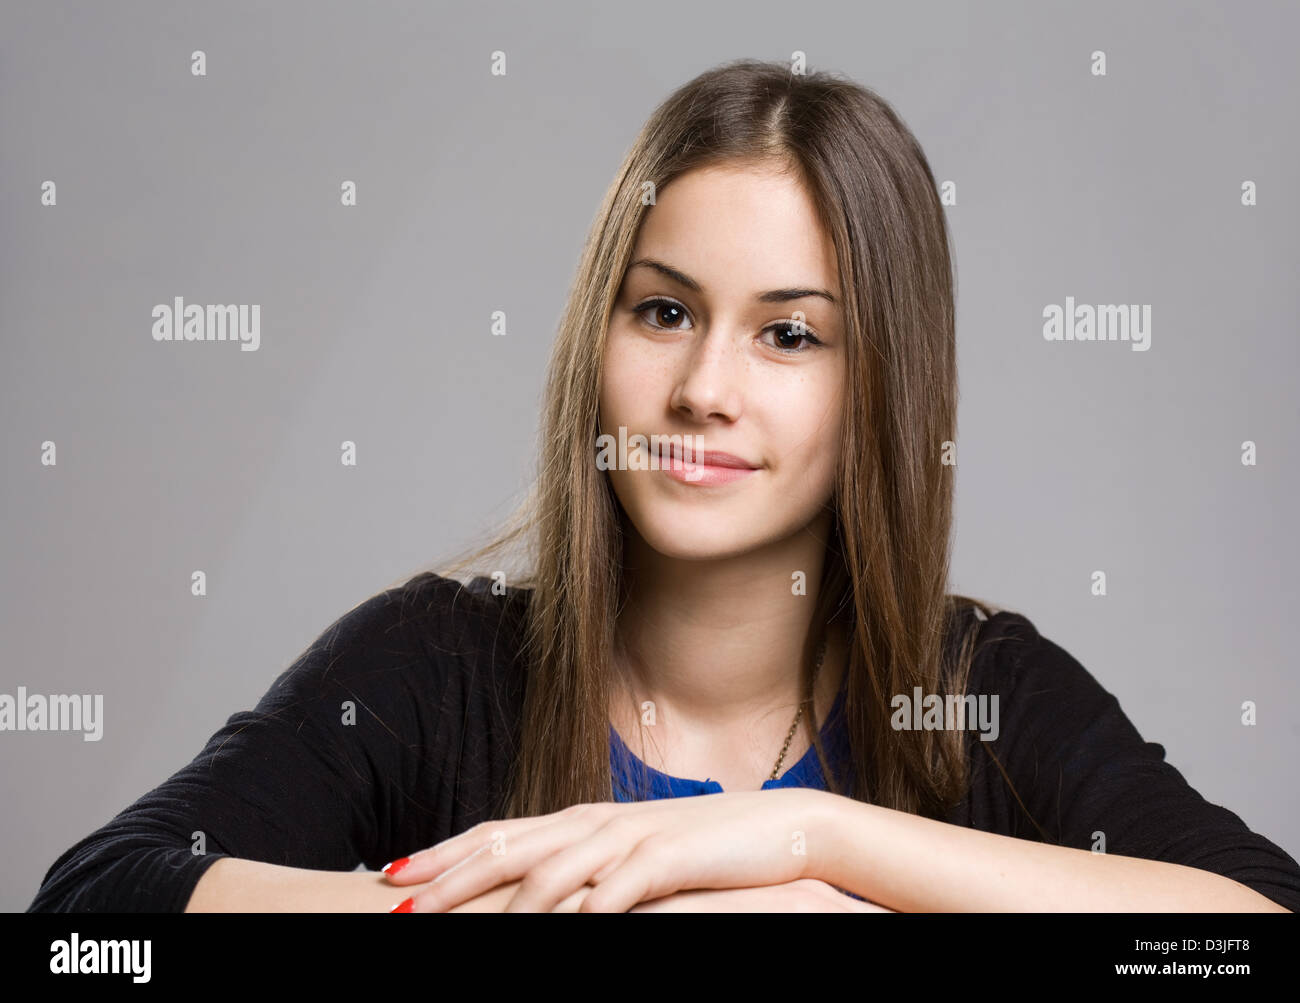 Expressive portrait of cute young teen beauty stock photo for Cute teenager girls